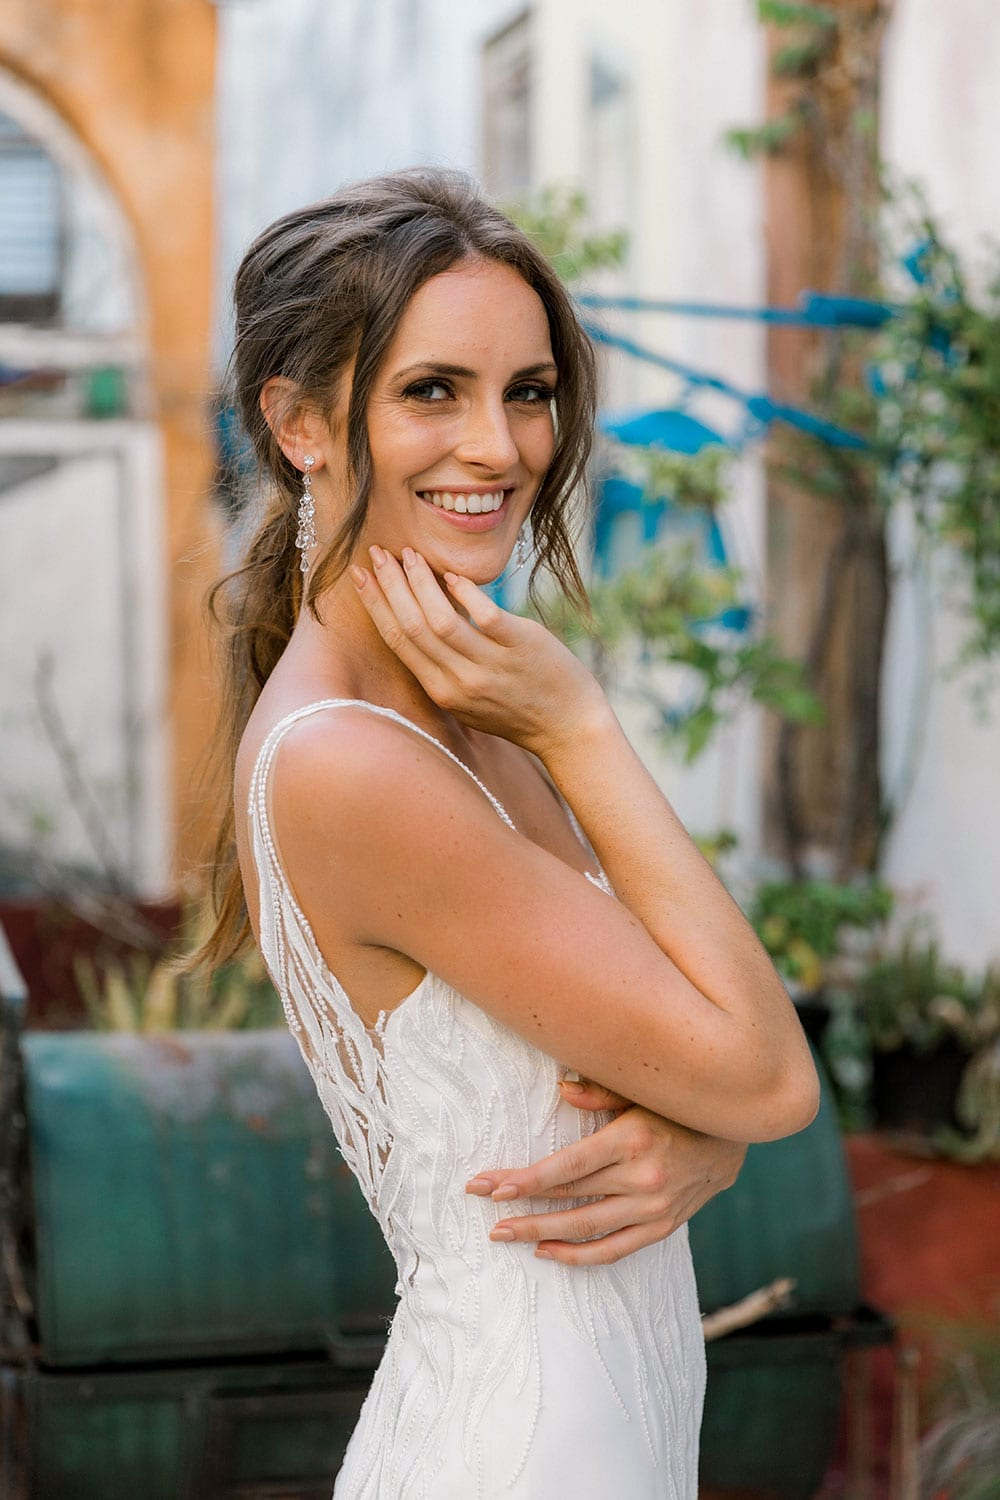 Model wearing Vinka Design Irina Wedding Dress, a n Embroidered Mermaid Lace Wedding Gown in front of colourful mural in Havana close up